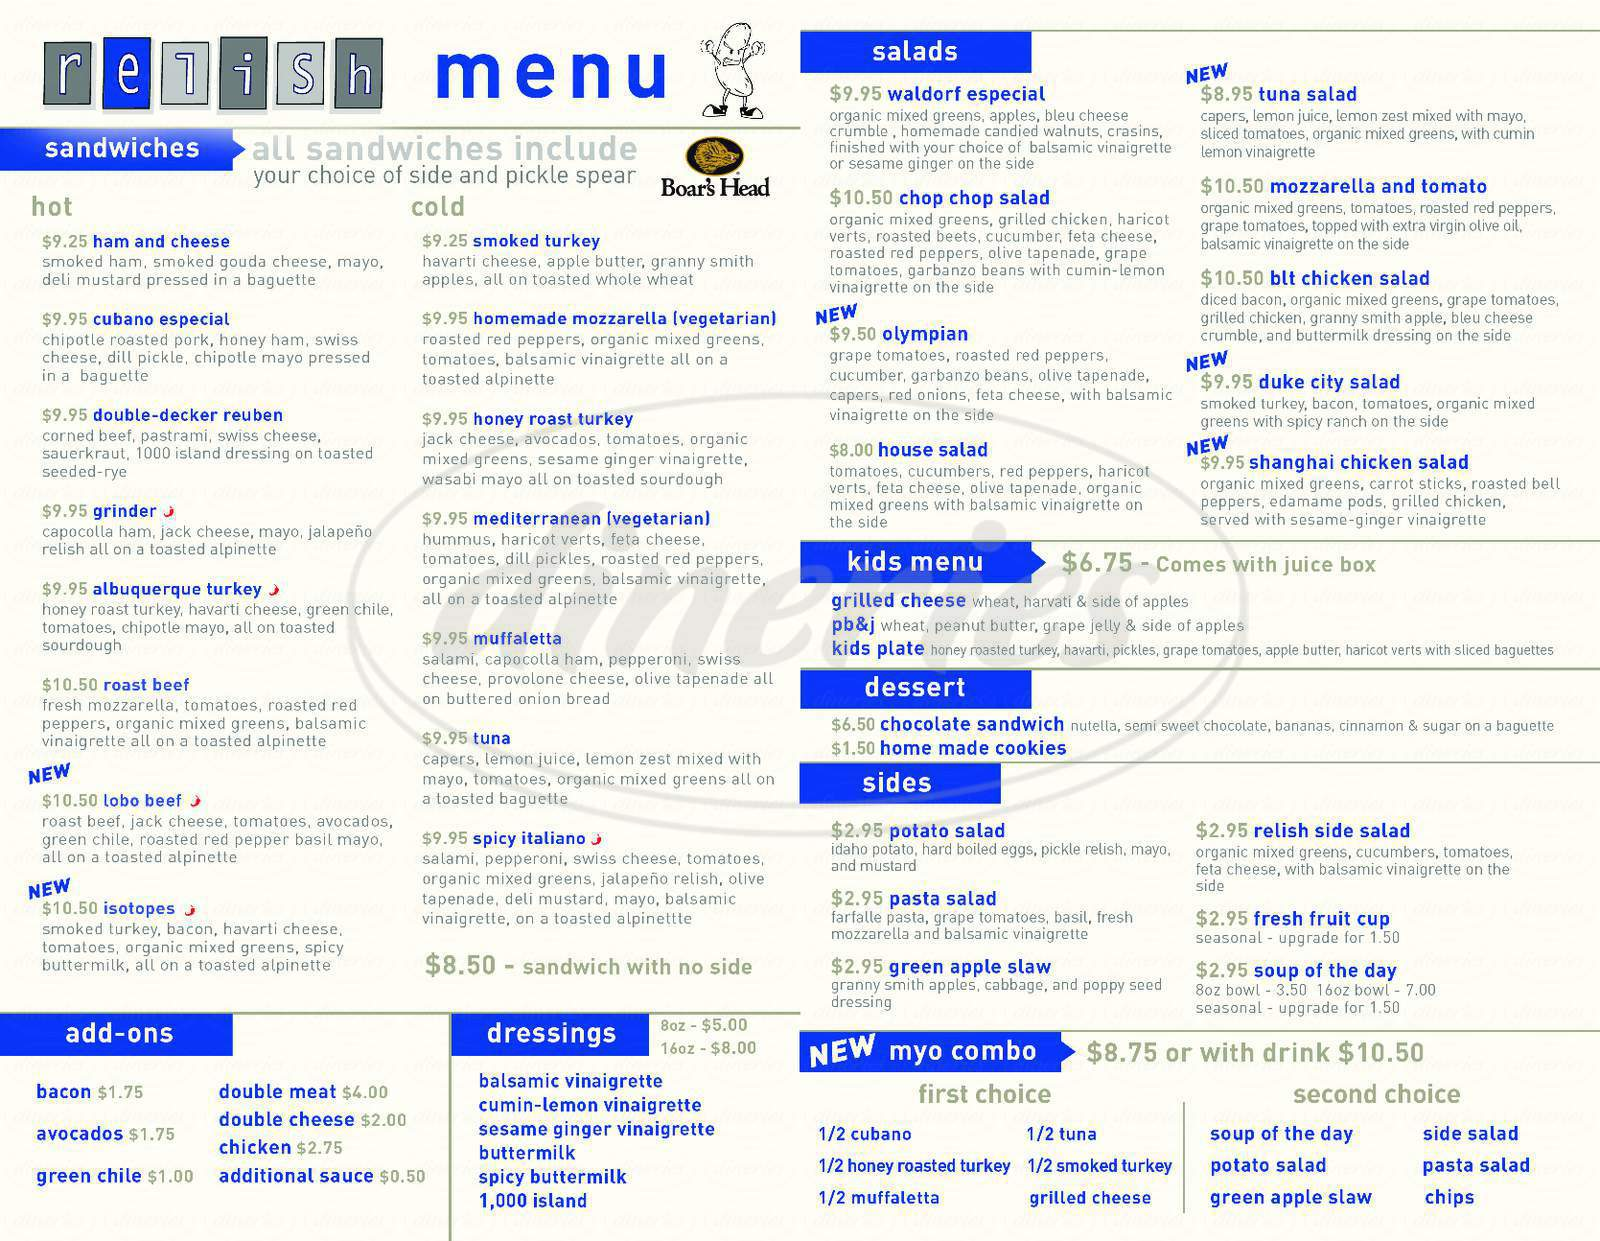 menu for Relish Gourmet Sandwiches